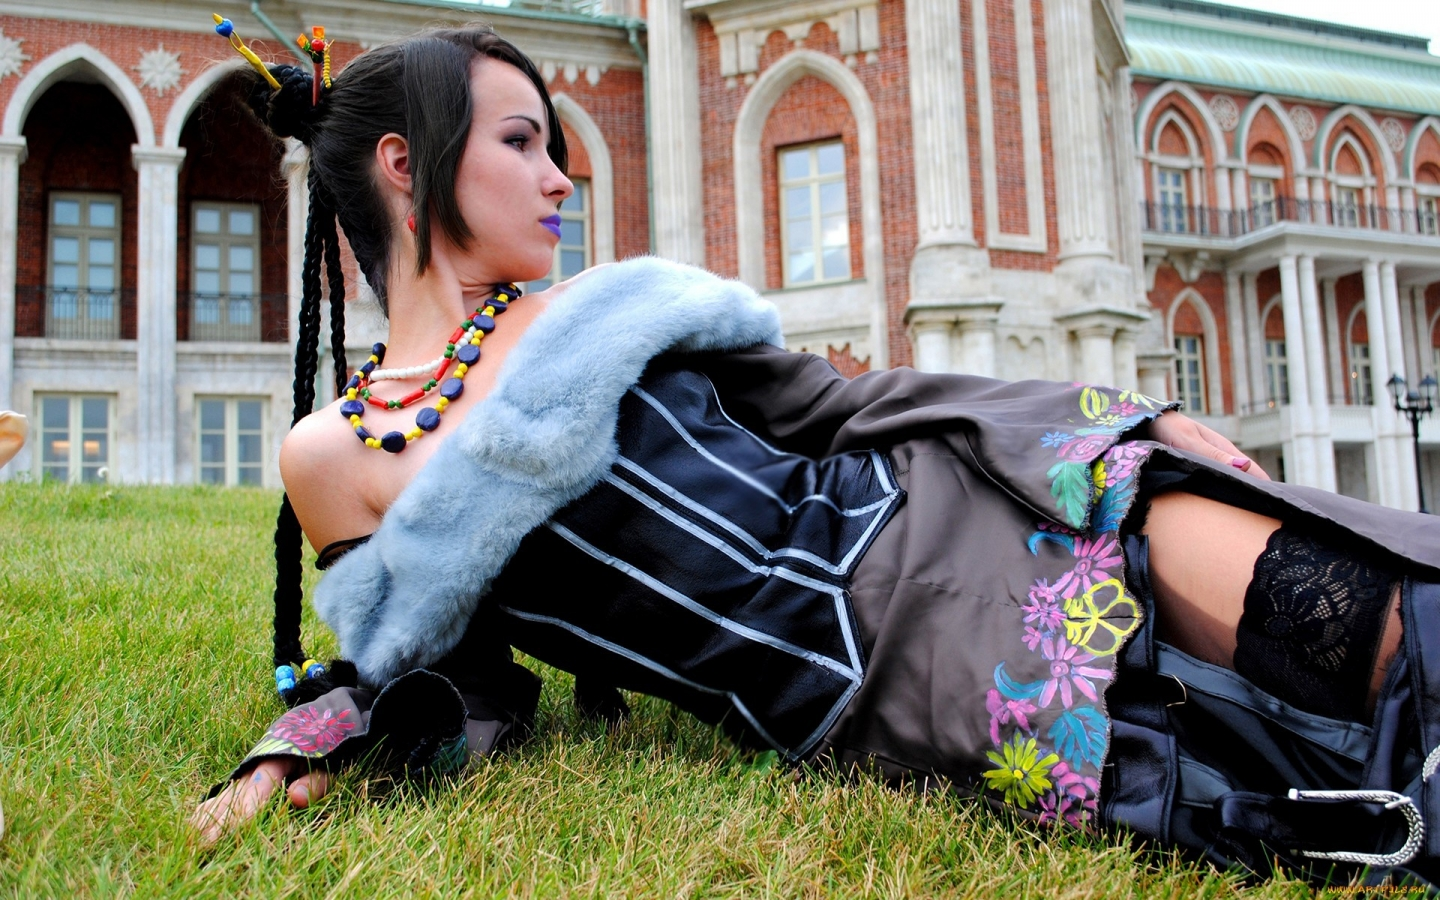 Chicas con Cosplay - 1440x900